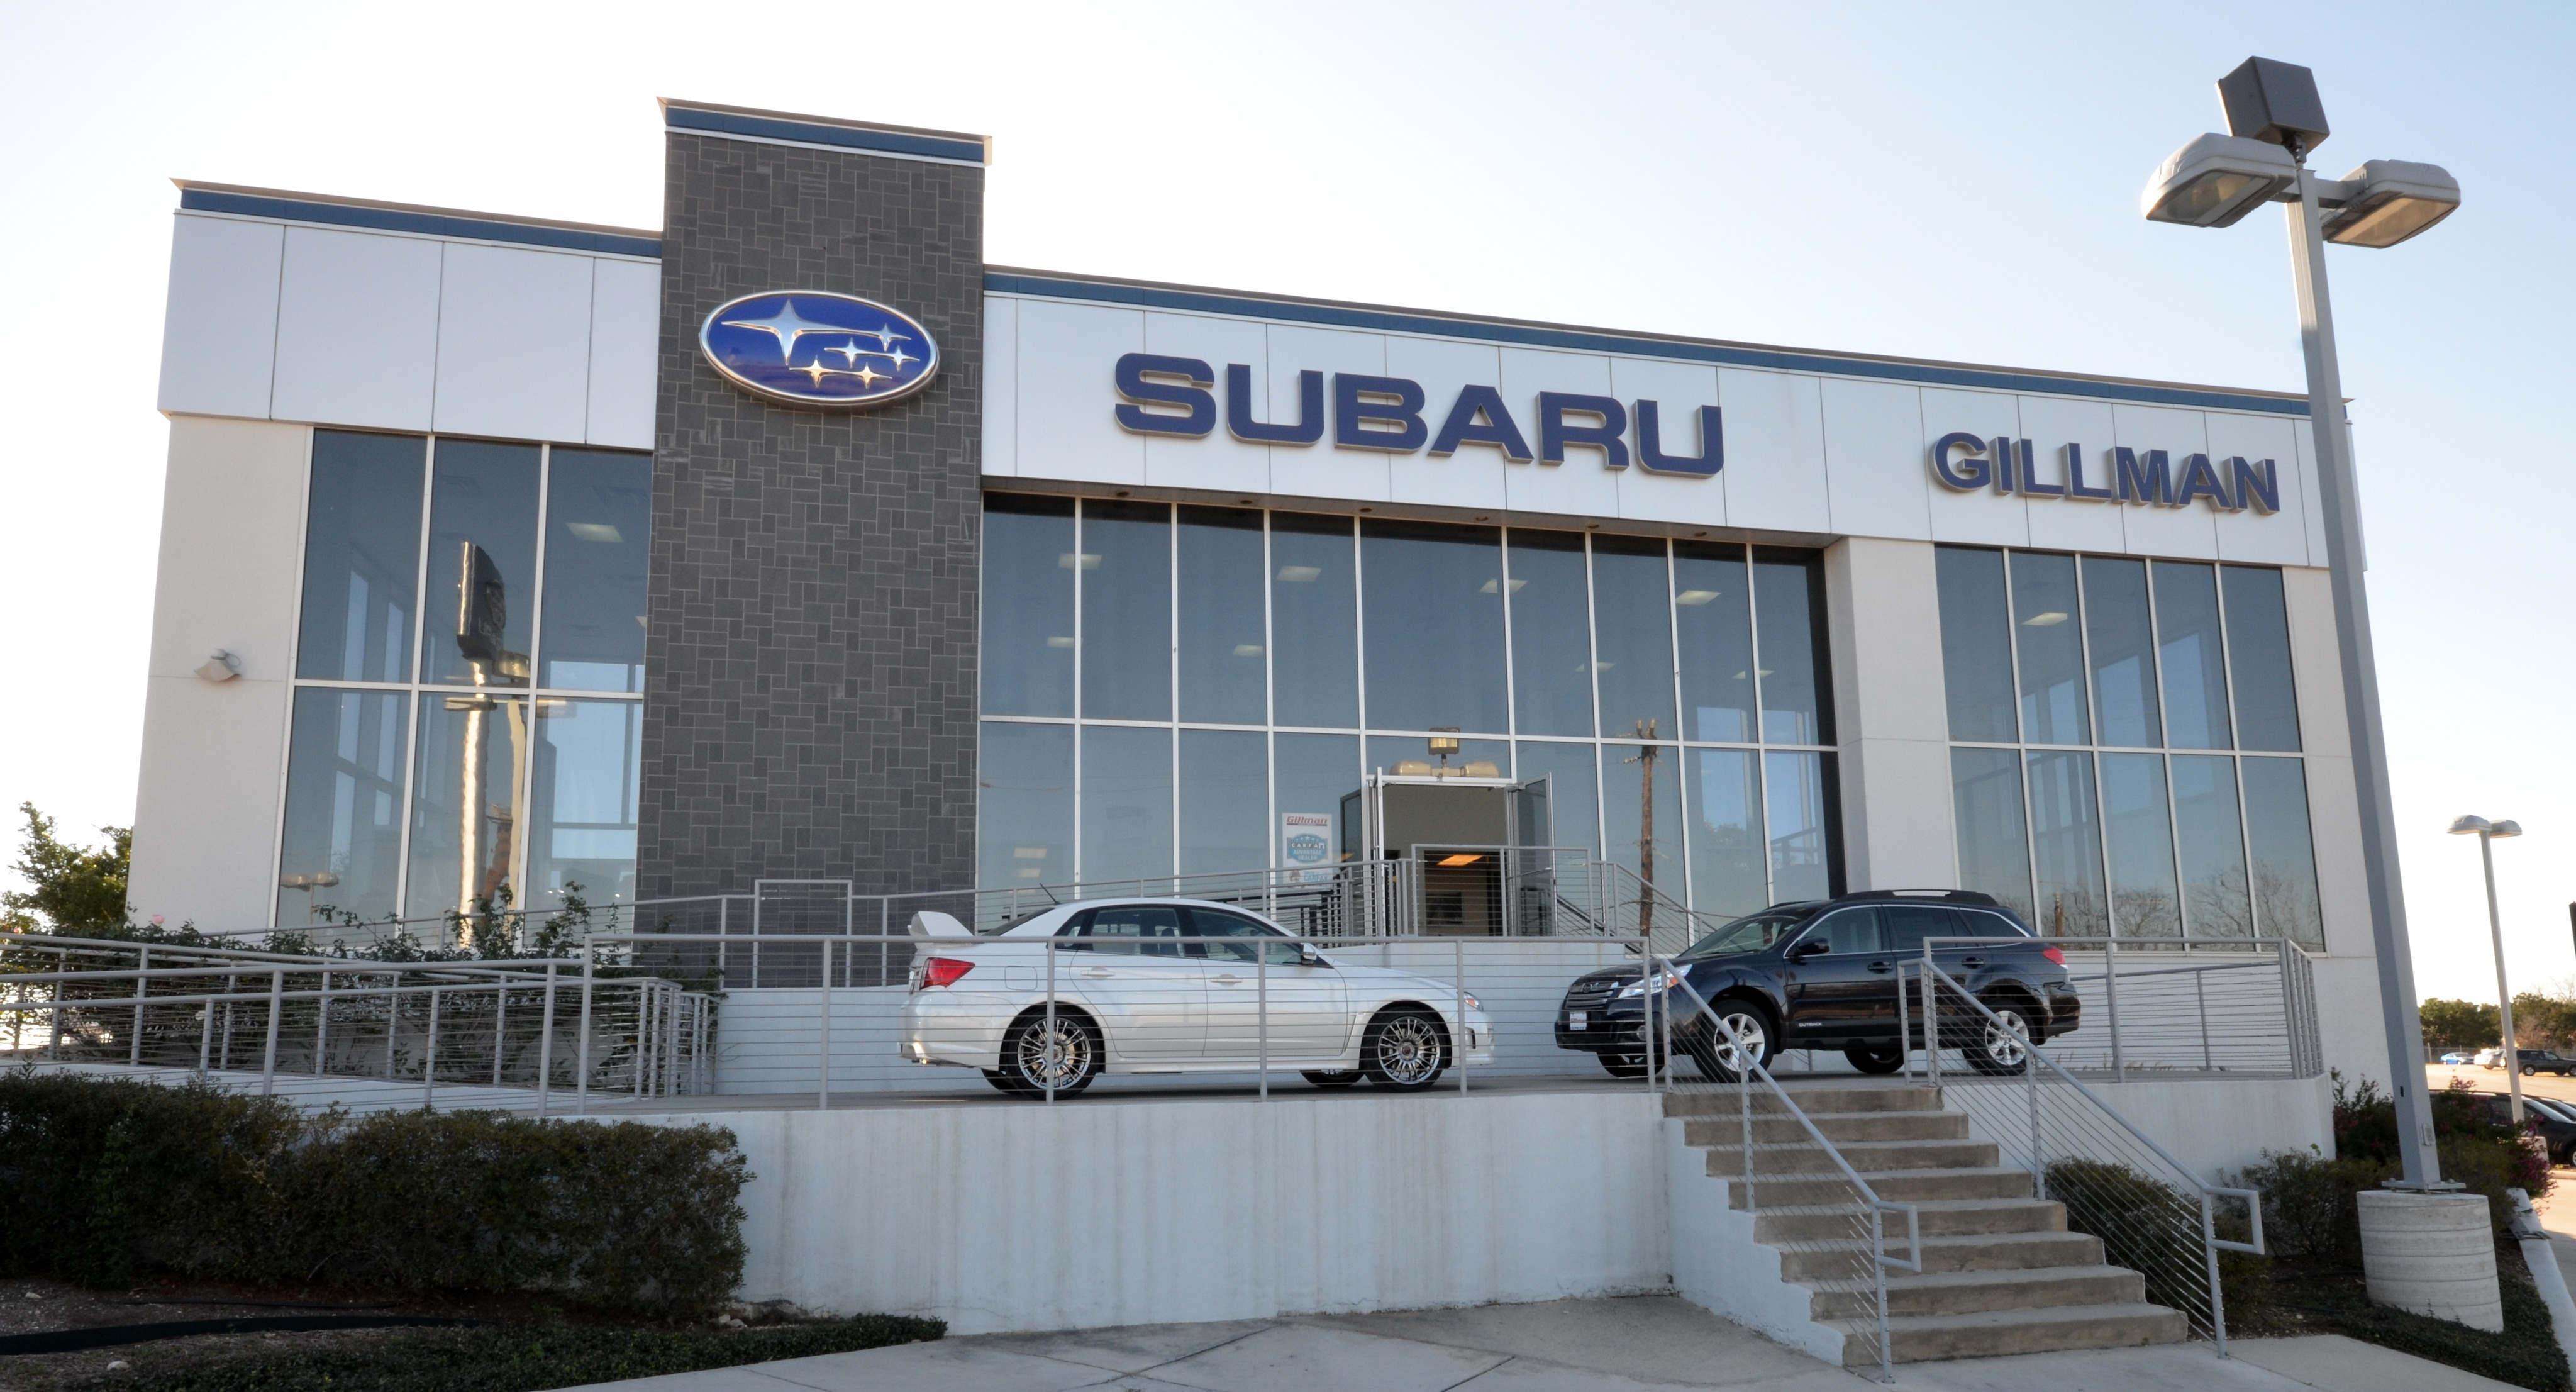 about gillman subaru of san antonio texas new subaru and used car dealer. Black Bedroom Furniture Sets. Home Design Ideas